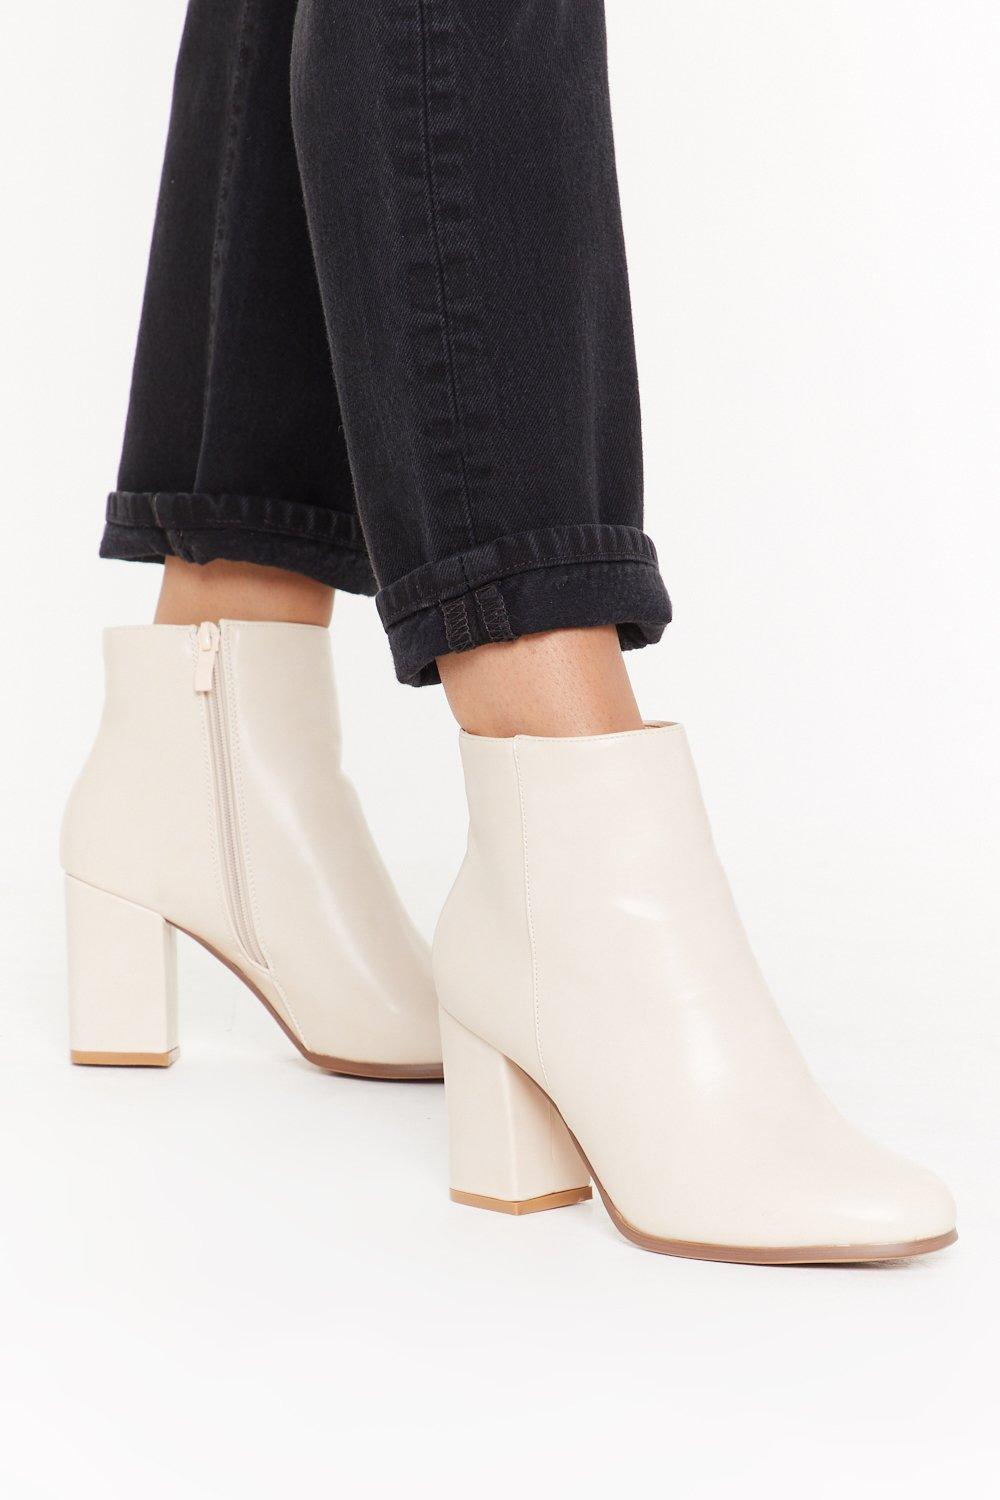 Image of Boot Nothing Heeled Ankle Boots